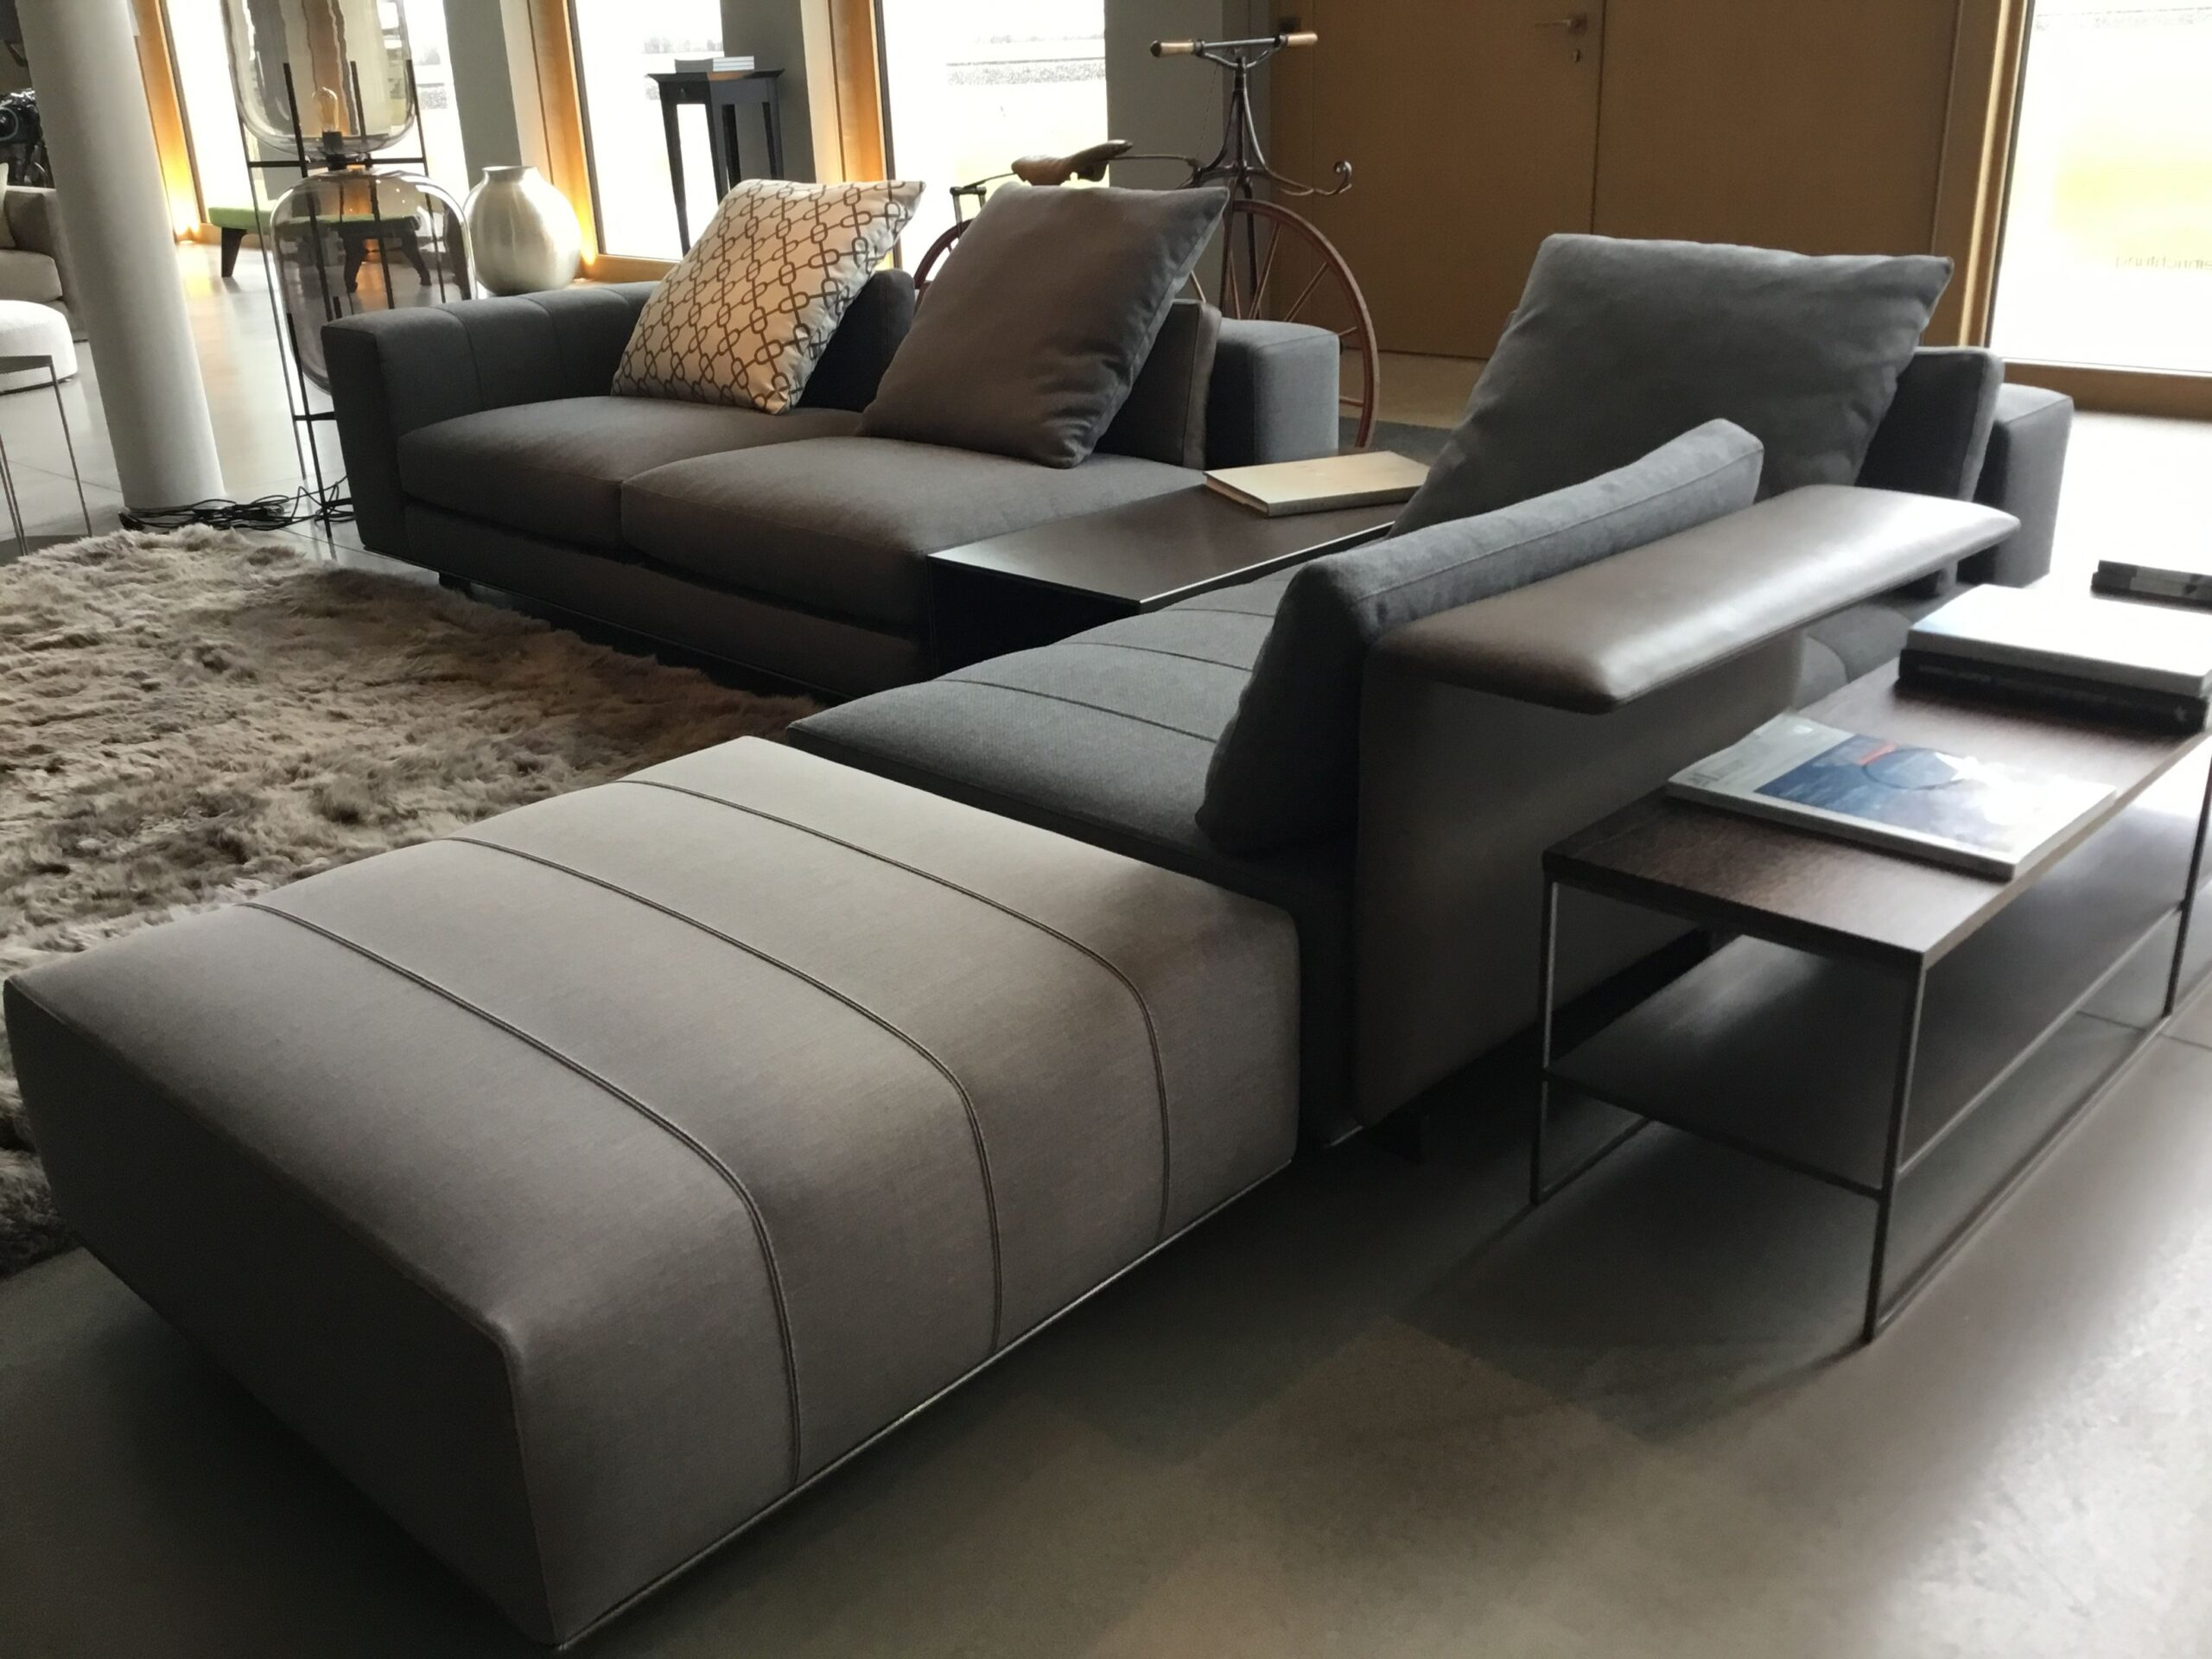 Full Size of Minotti Indiana Sofa Alexander Dimensions Freeman Lawrence Seating System Andersen Range List For Sale Uk Hamilton Used Cad Block Cost Bed Sales Joachim Wagner Sofa Minotti Sofa